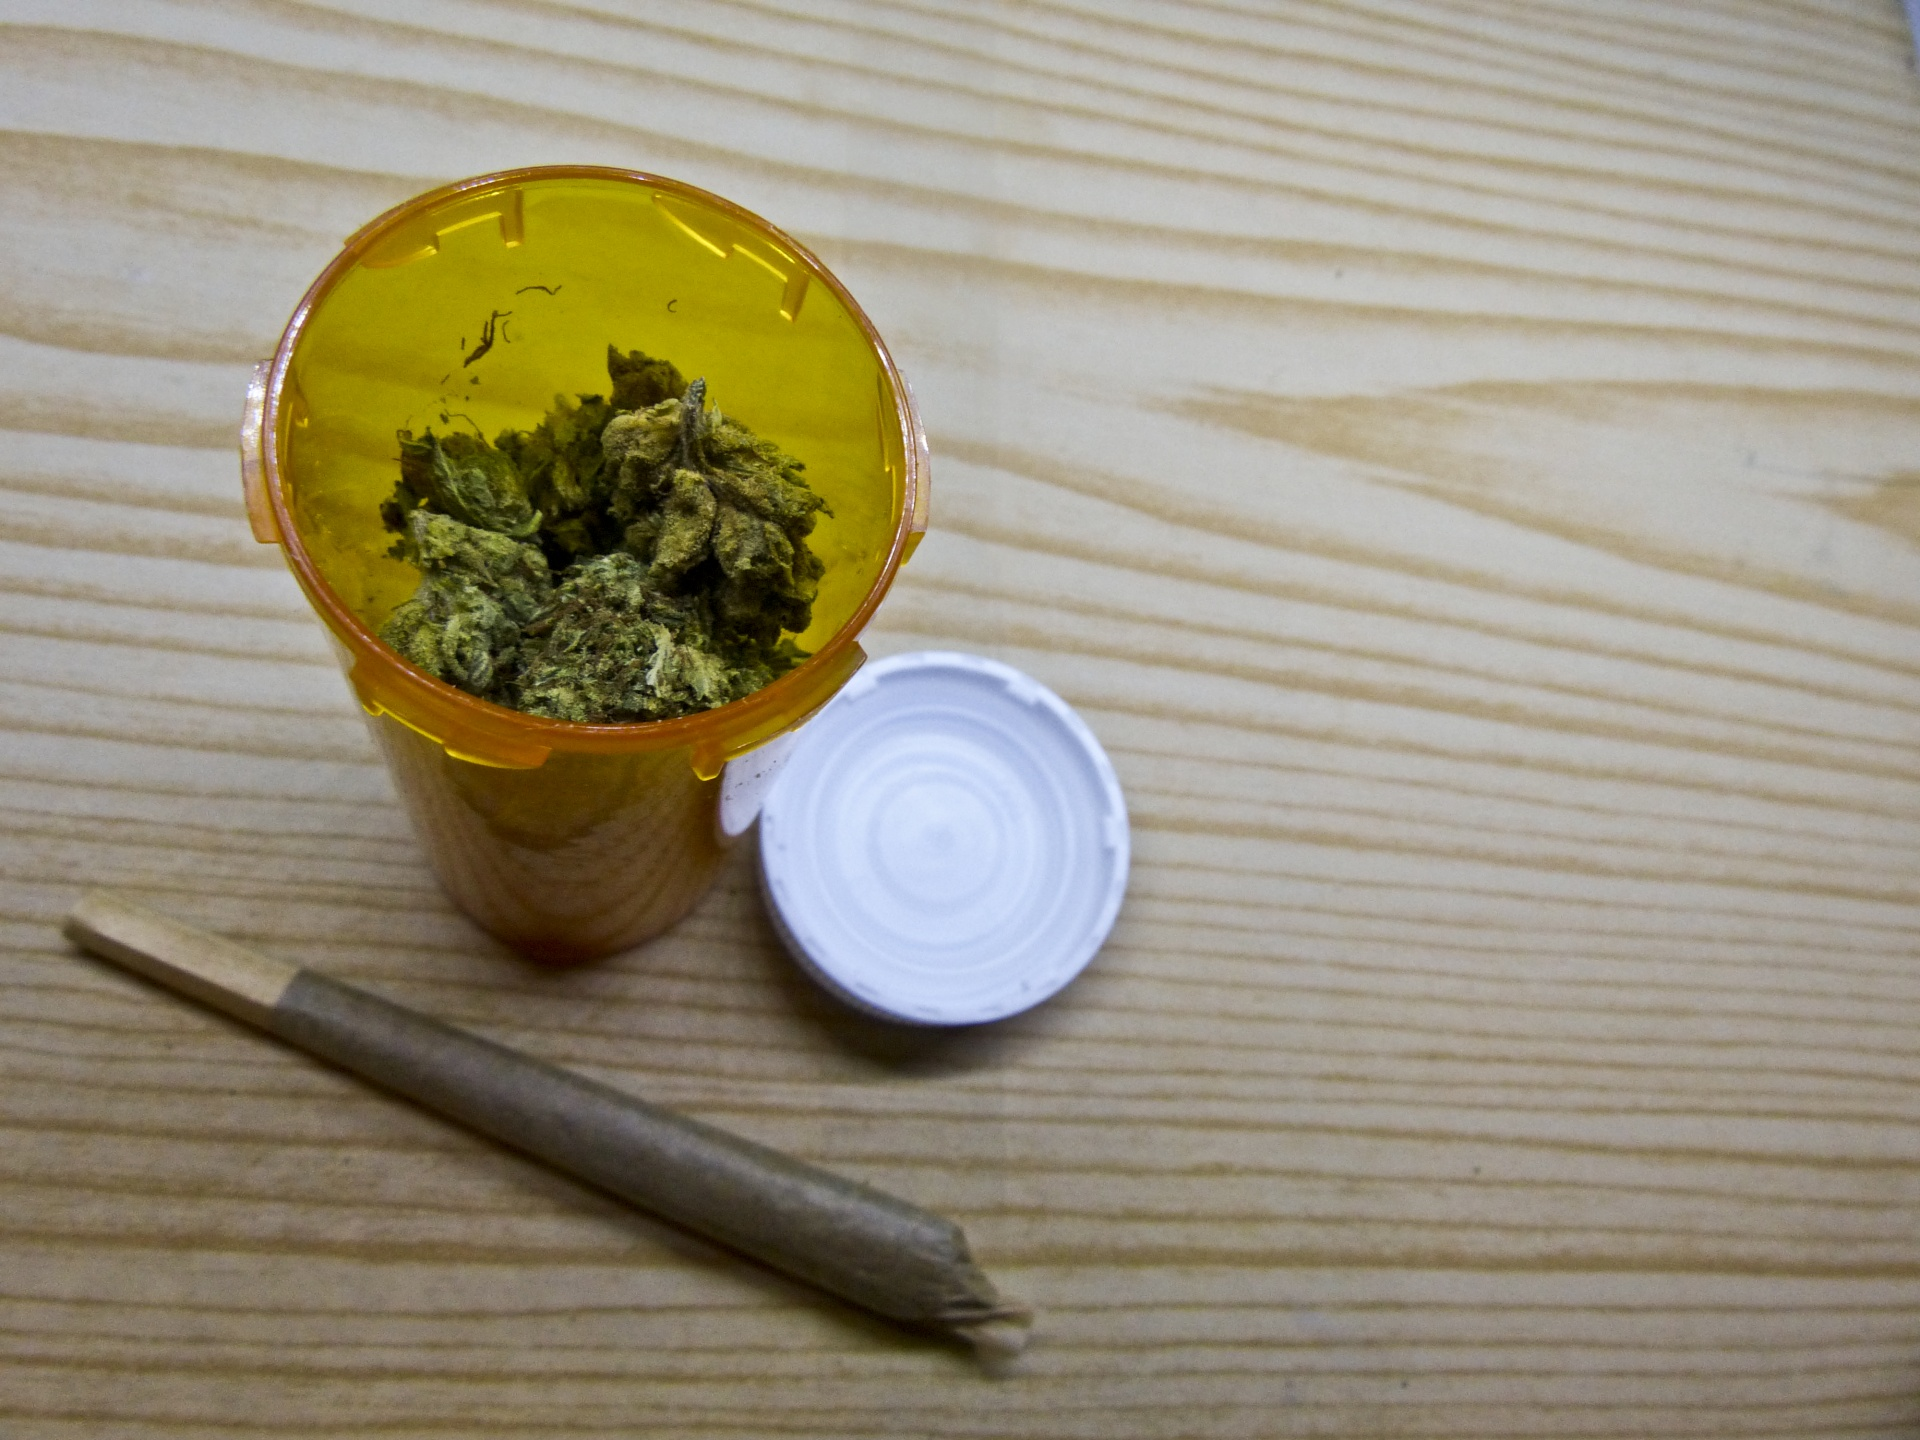 Photo of medical marijuana in prescription bottle